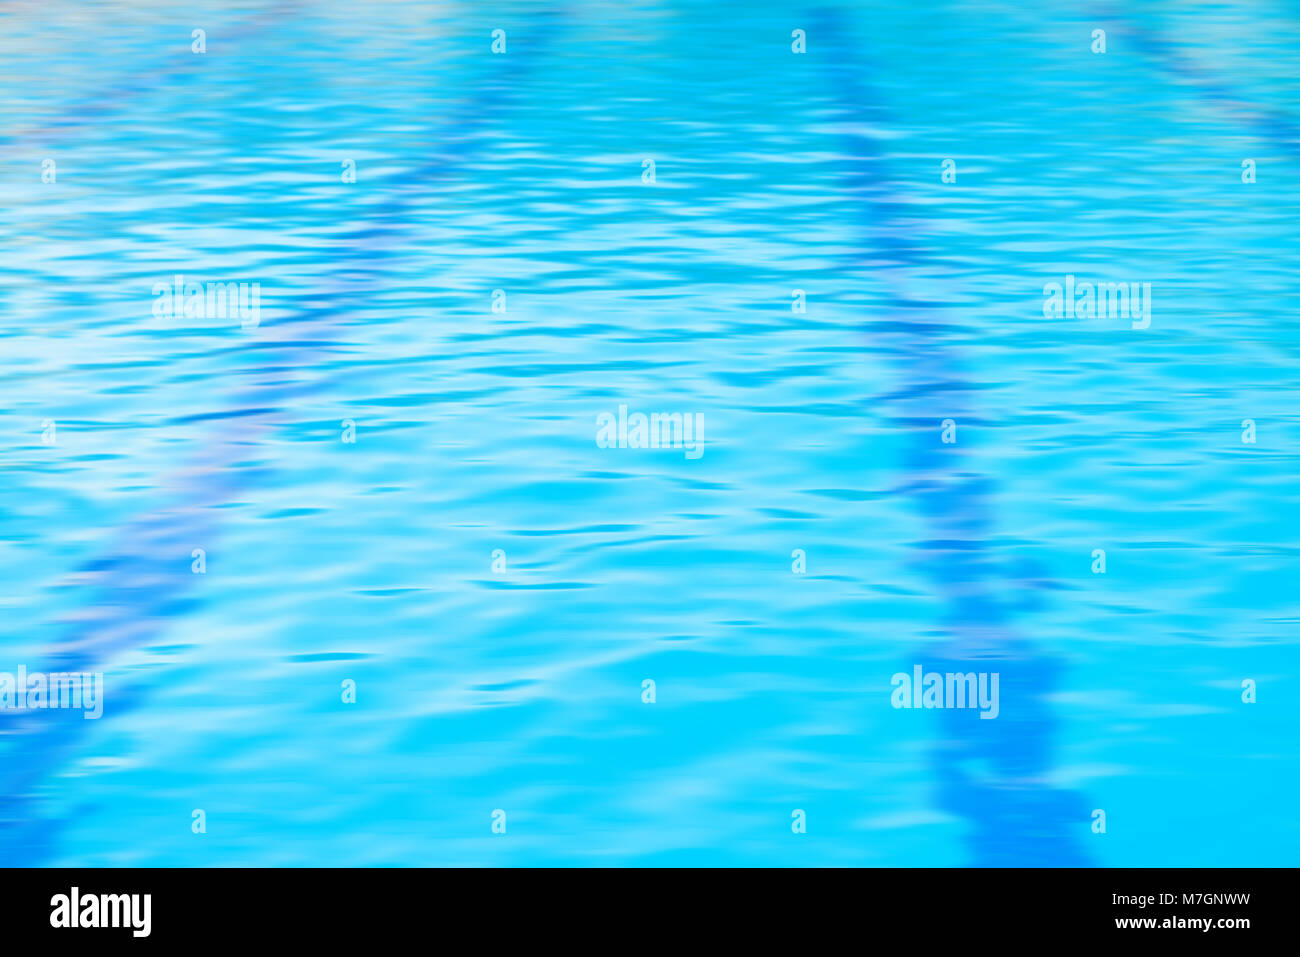 Page 12 Abstract Cool Blue Gradient Background High Resolution Stock Photography And Images Alamy